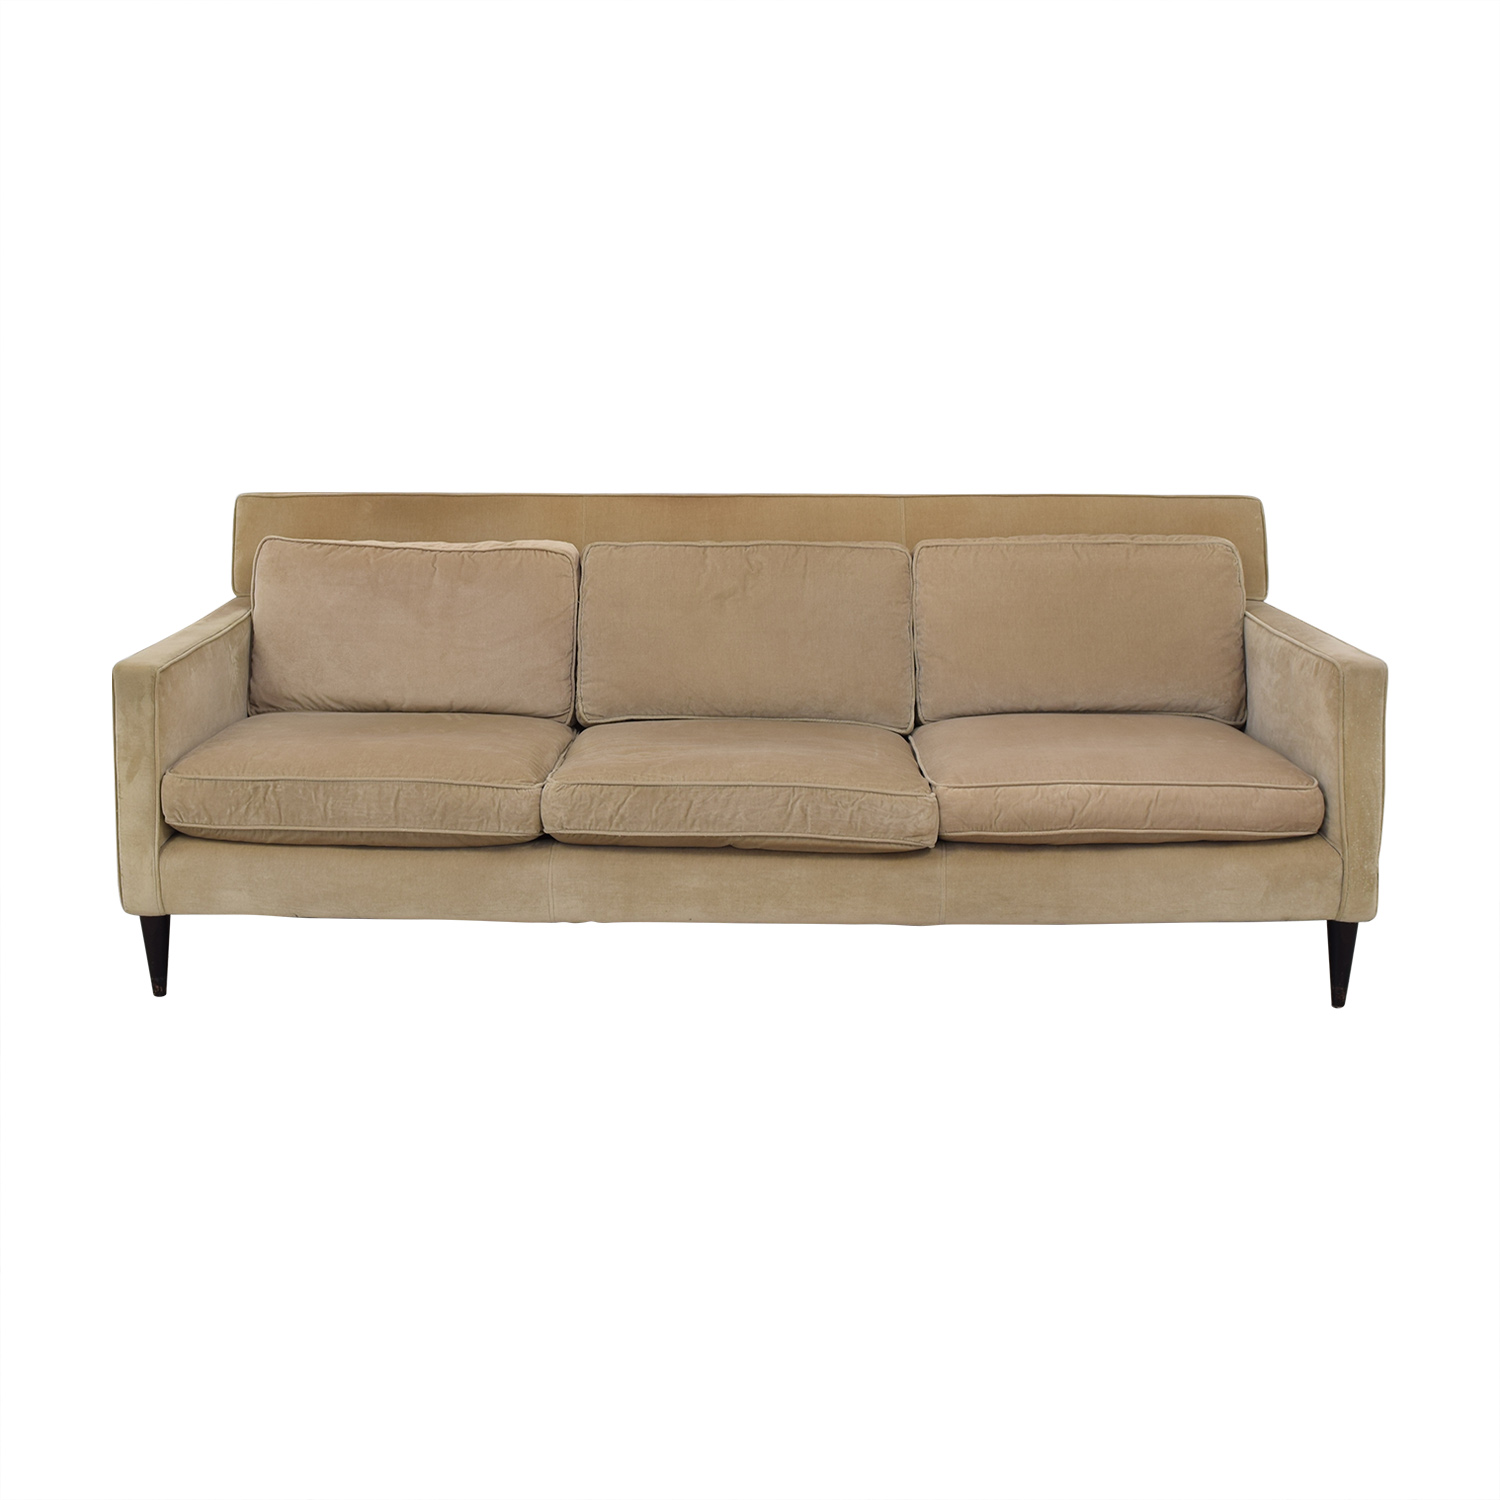 Crate & Barrel Crate & Barrel Sofa tan